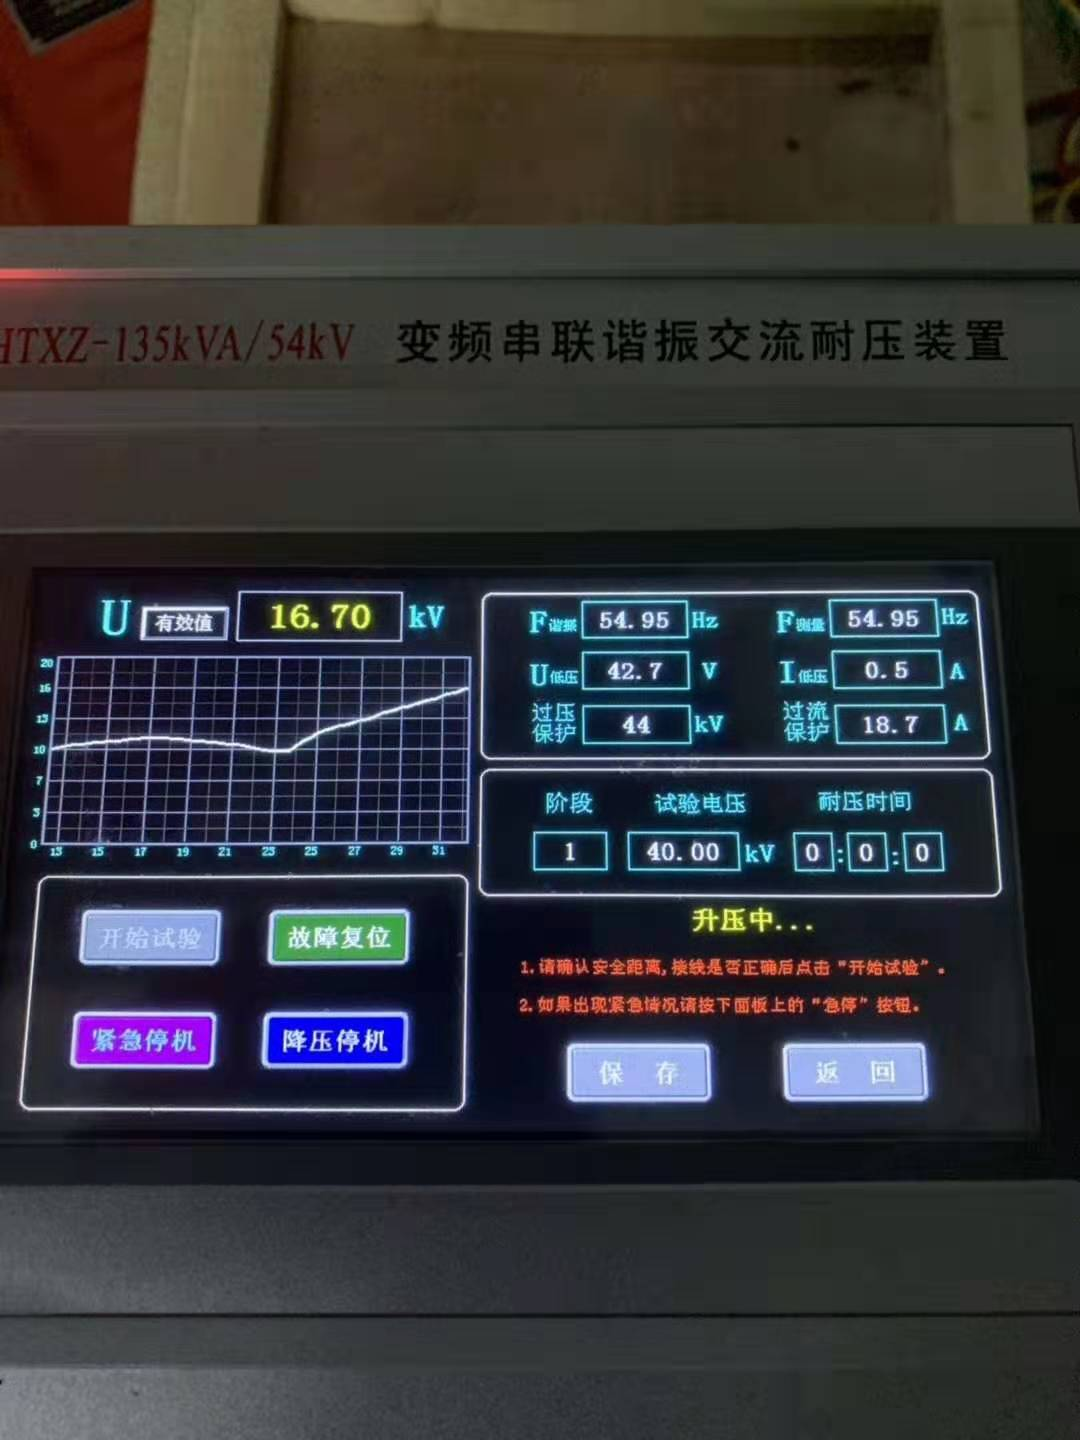 Our company came to a new series of resonance detection equipment for field implementation.